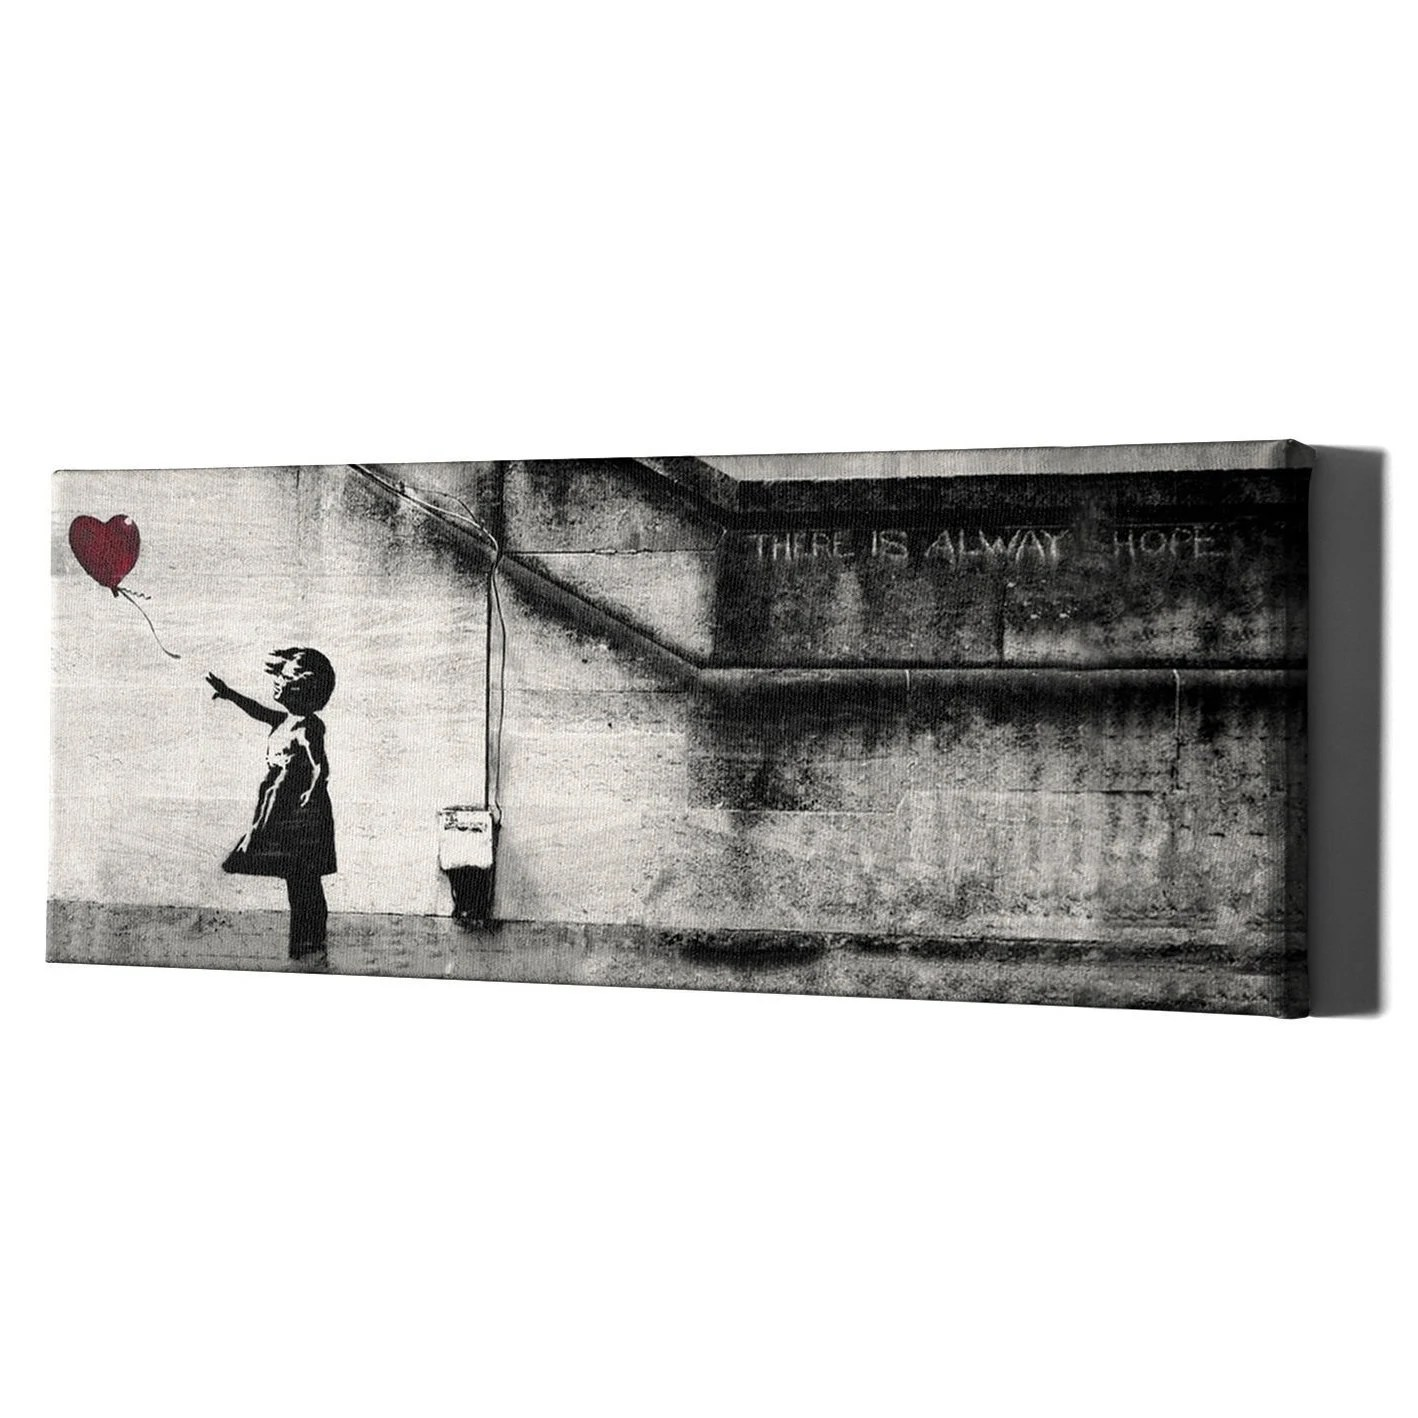 Banksy Canvas Art Banksy Red Air Balloon Girl Canvas Art Nursery Wall Decor Room Gift Print Black Abstract Graffiti Street Bedroom Prints Young Painting